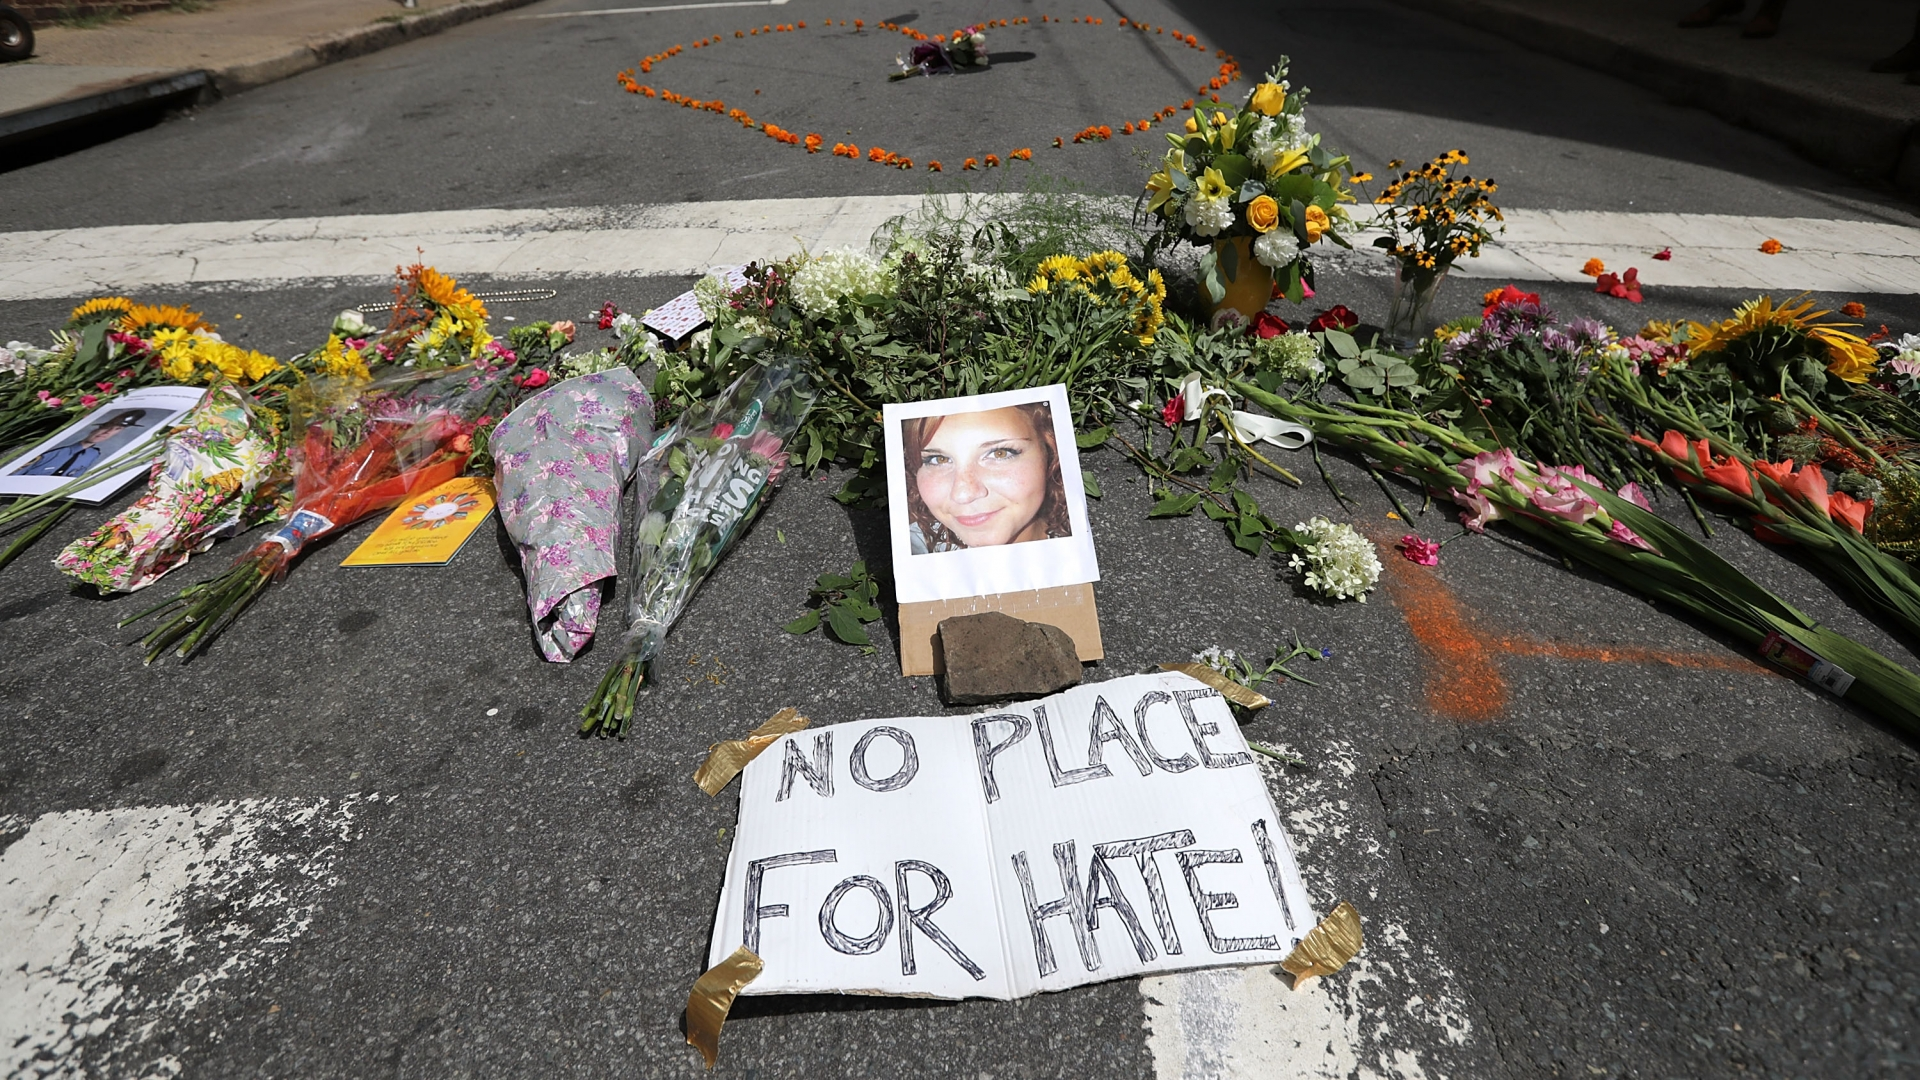 Flowers surrounding a photo of 32-year-old Heather Heyer, who was killed when a car plowed into a crowd of people protesting against the white supremacist Unite the Right rally, August 13, 2017 in Charlottesville, Virginia. (Credit: Chip Somodevilla/Getty Images)